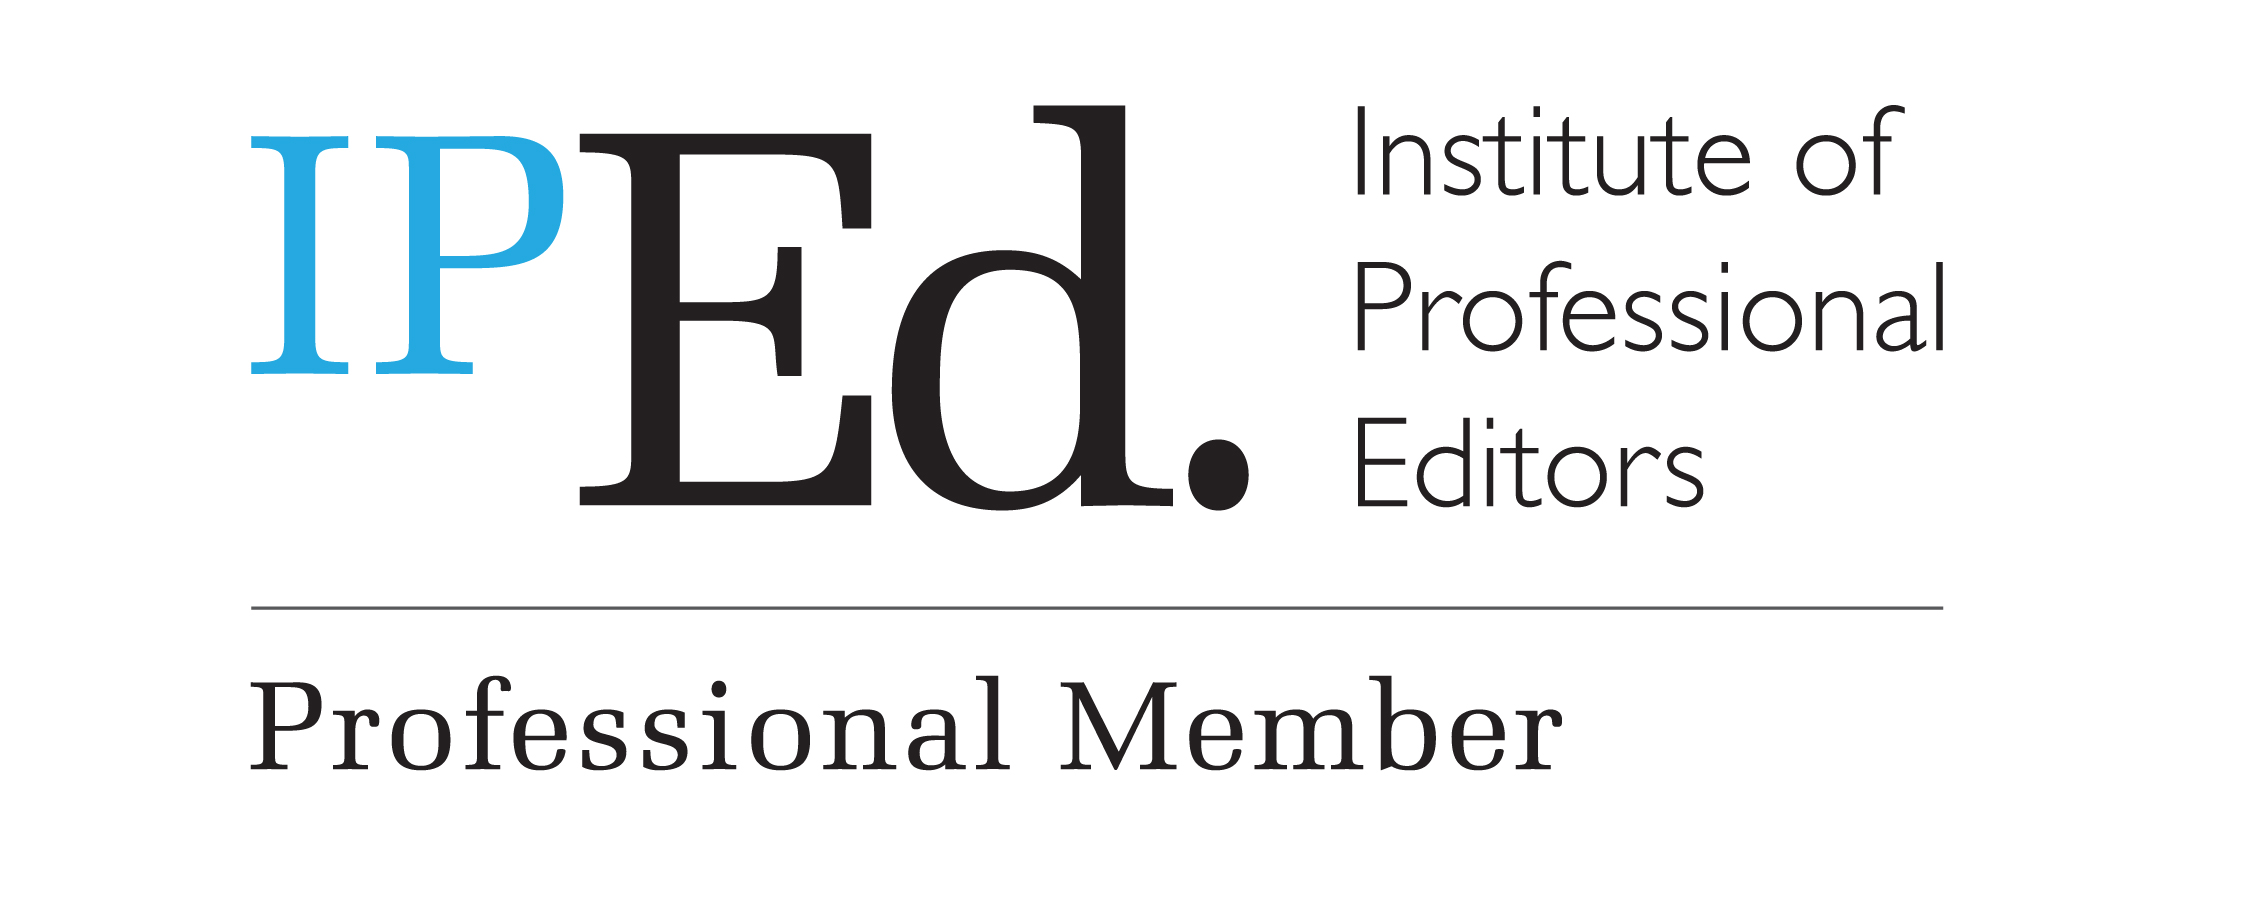 IPEd Professional Member verification badge